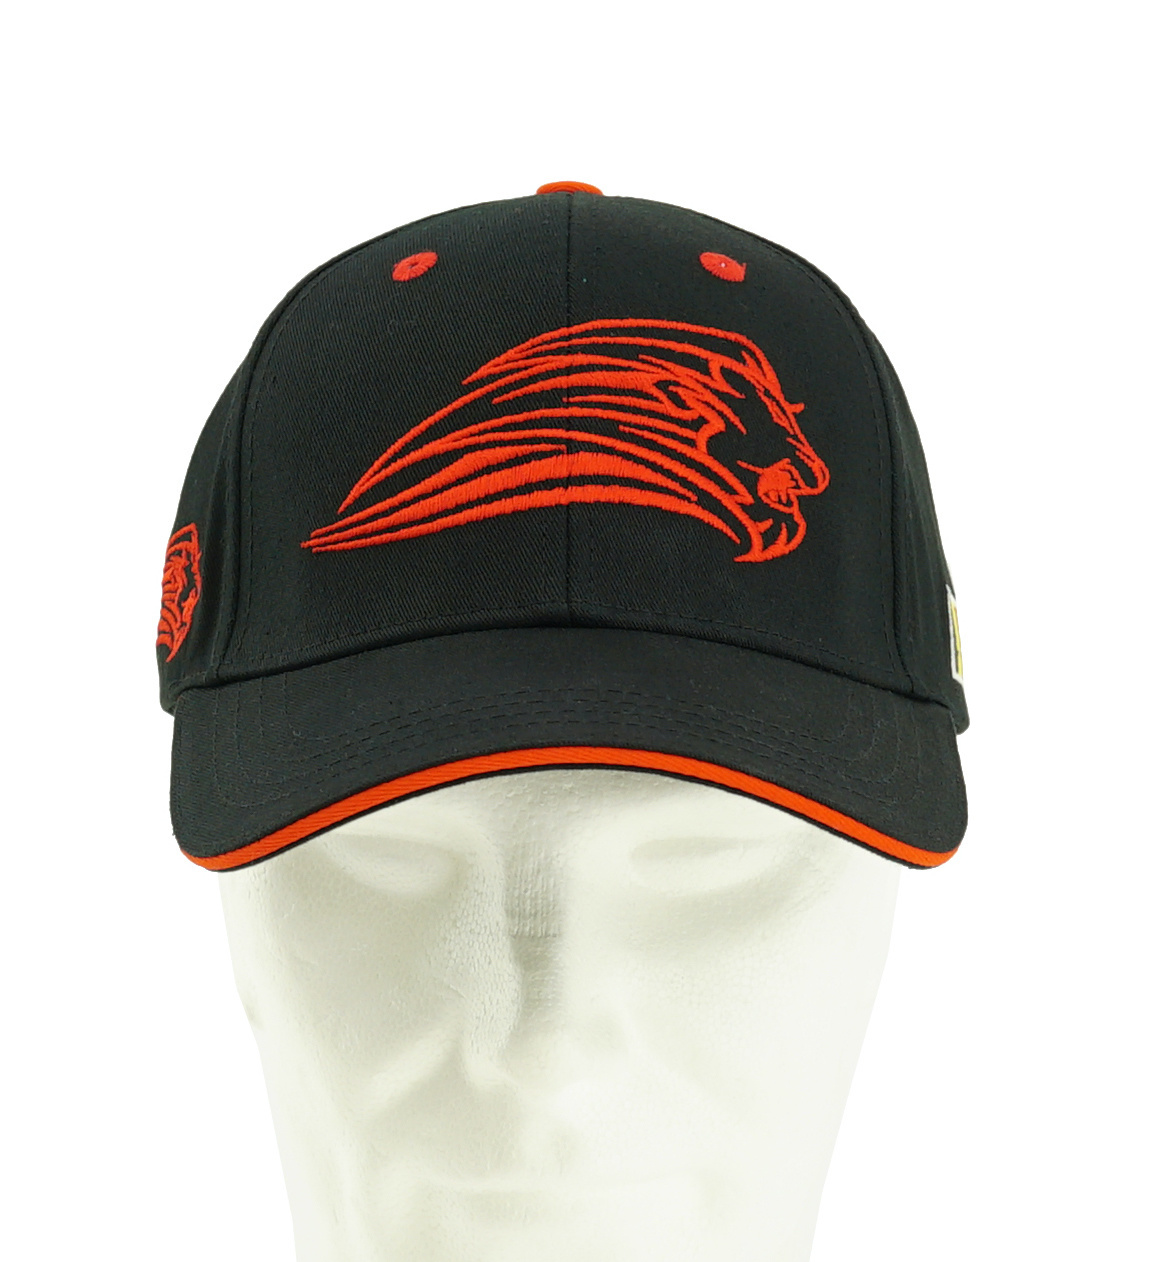 Topfanz Cap black Lion - Red Lions